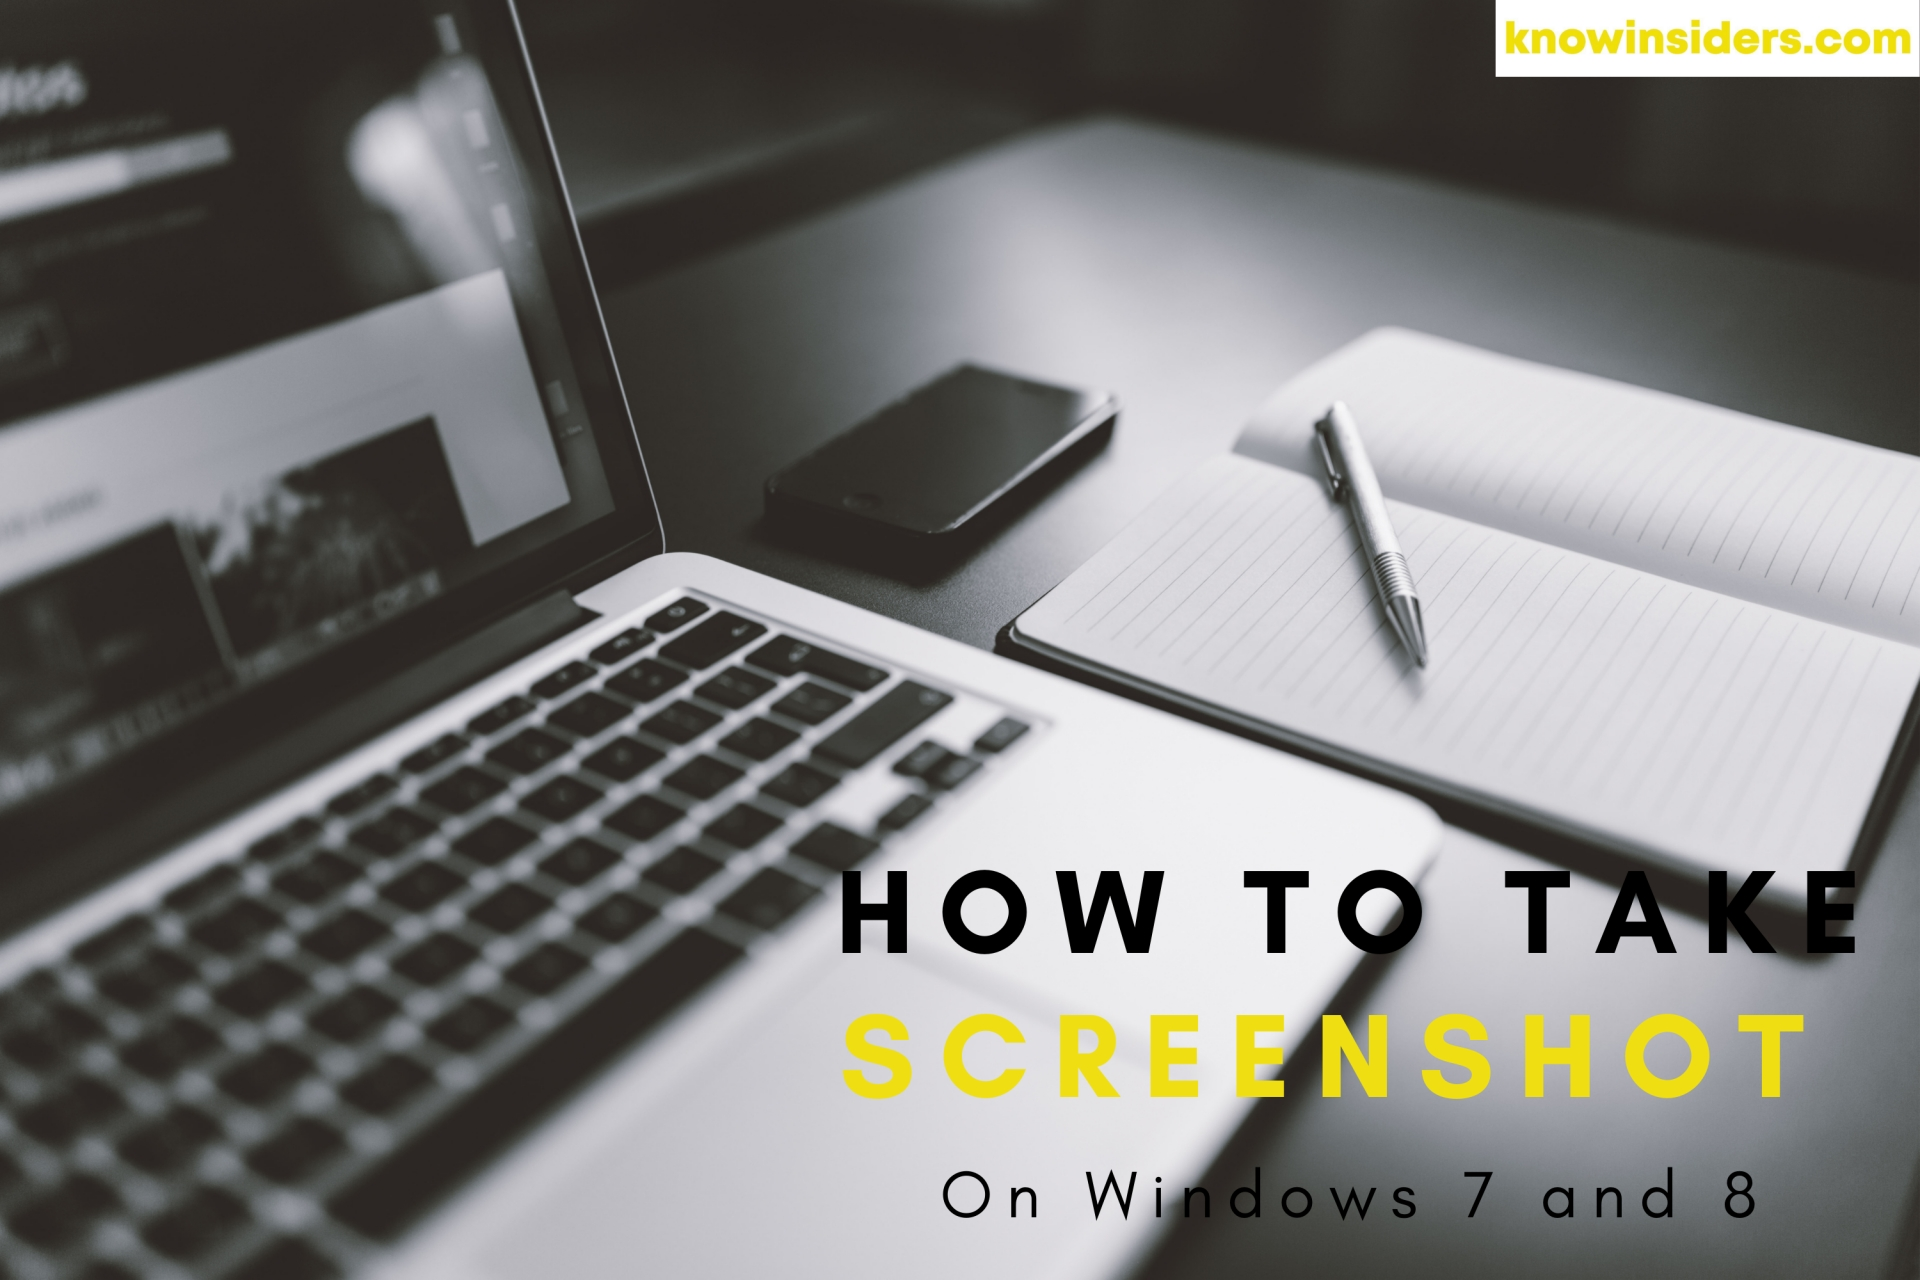 How To Take Screenshot on Windowns 7, 8 With Easy Steps